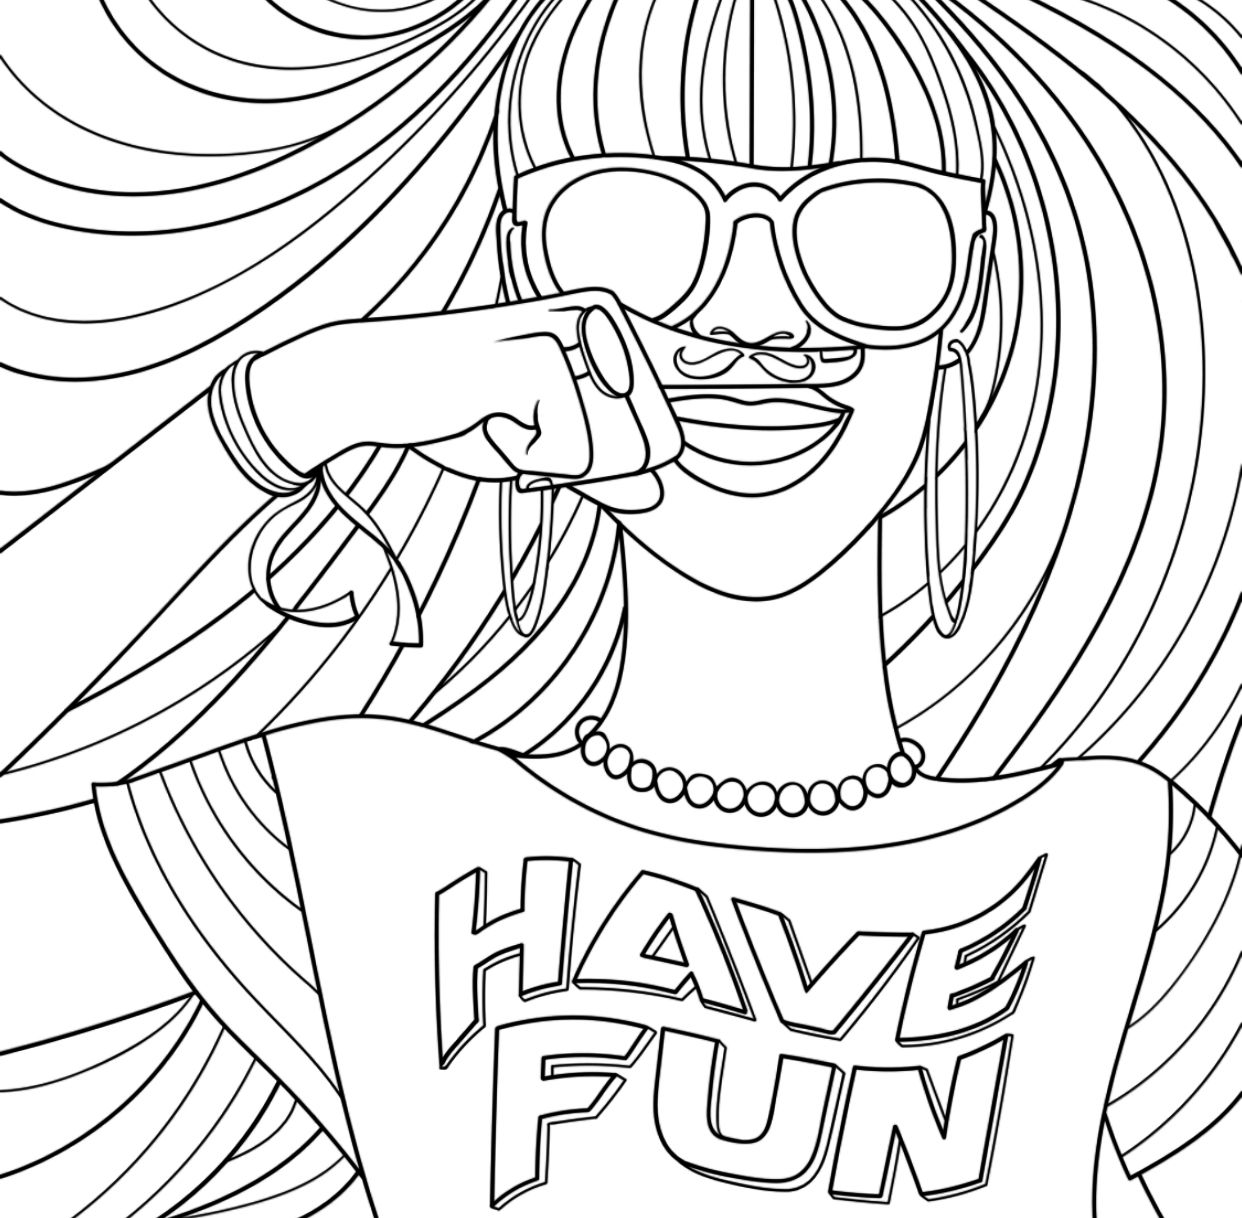 43+ Random coloring pages printable ideas in 2021